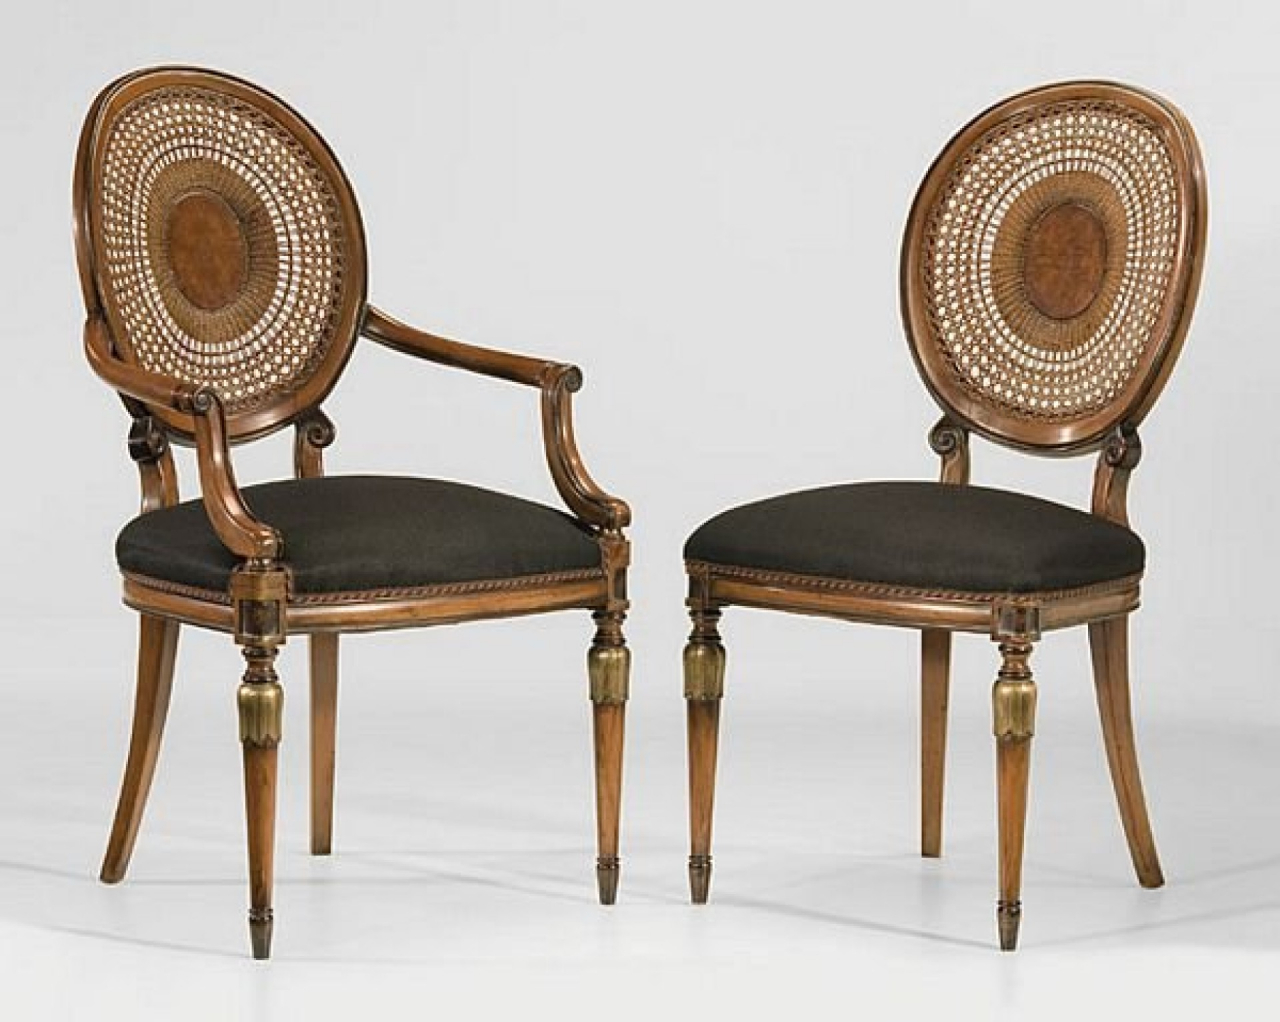 Louis XVI Dining Chairs with French Hand Caning  by Decorative Crafts